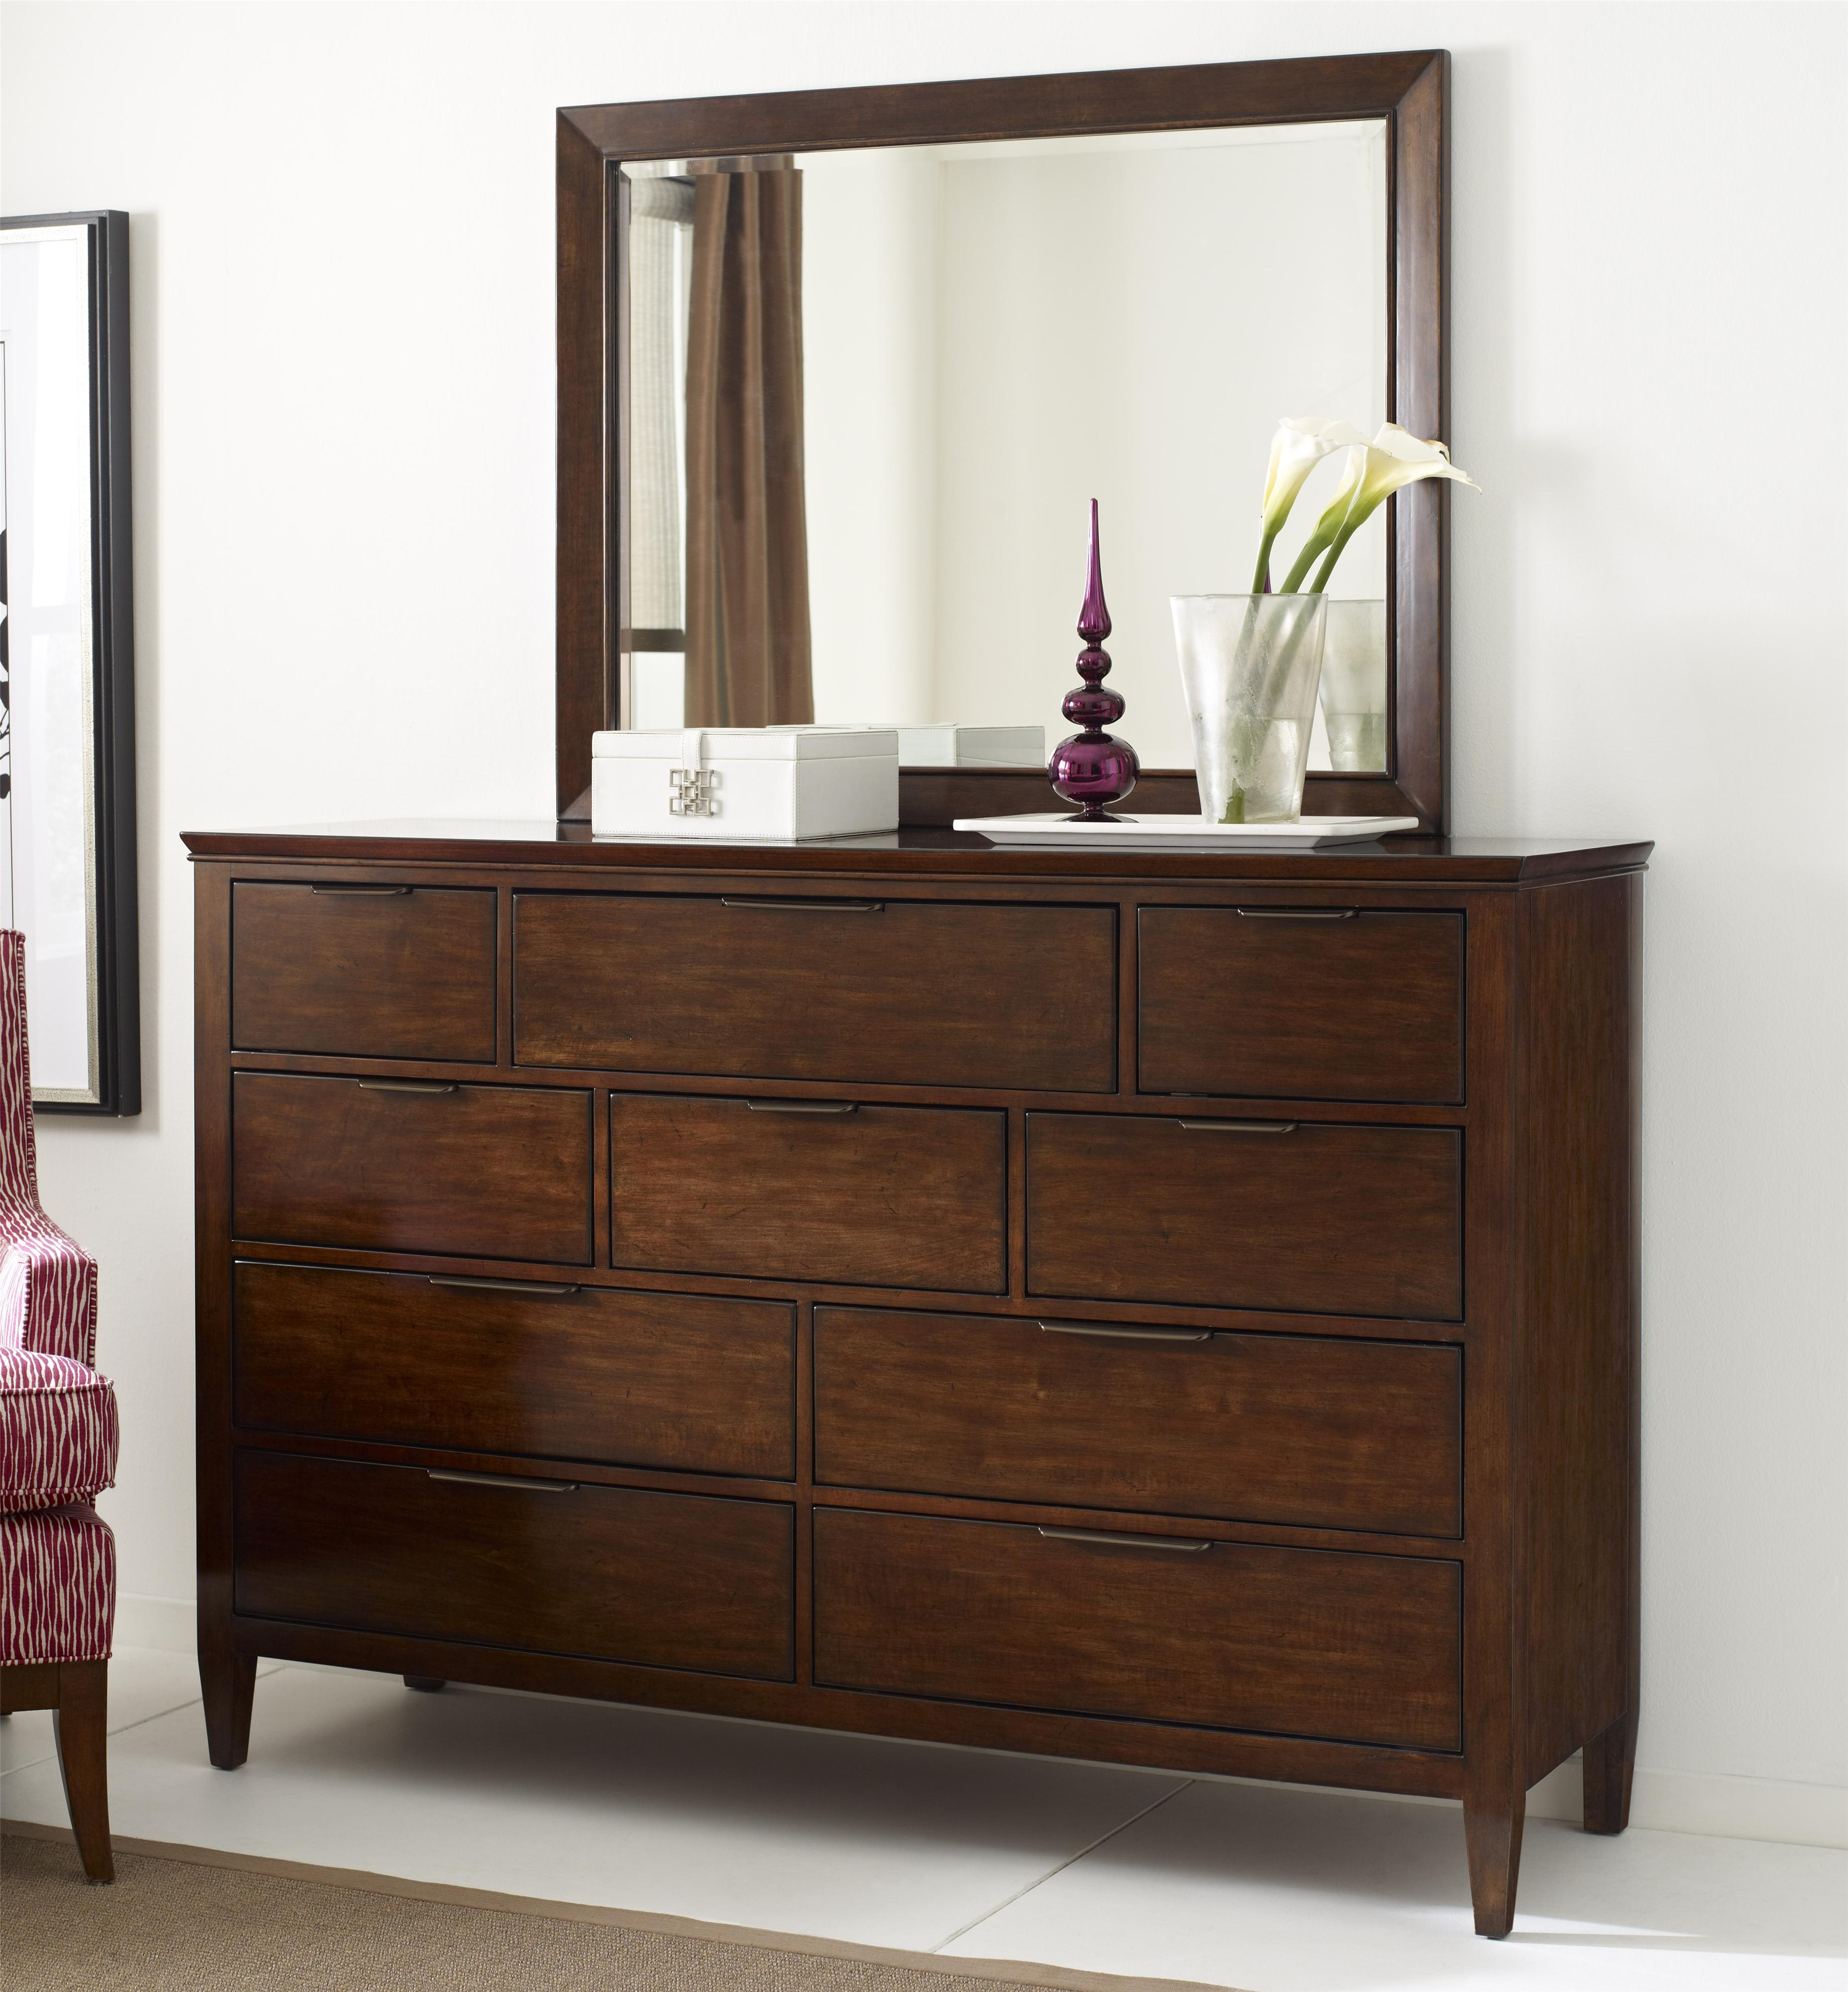 Luccia Bureau and Mirror Set